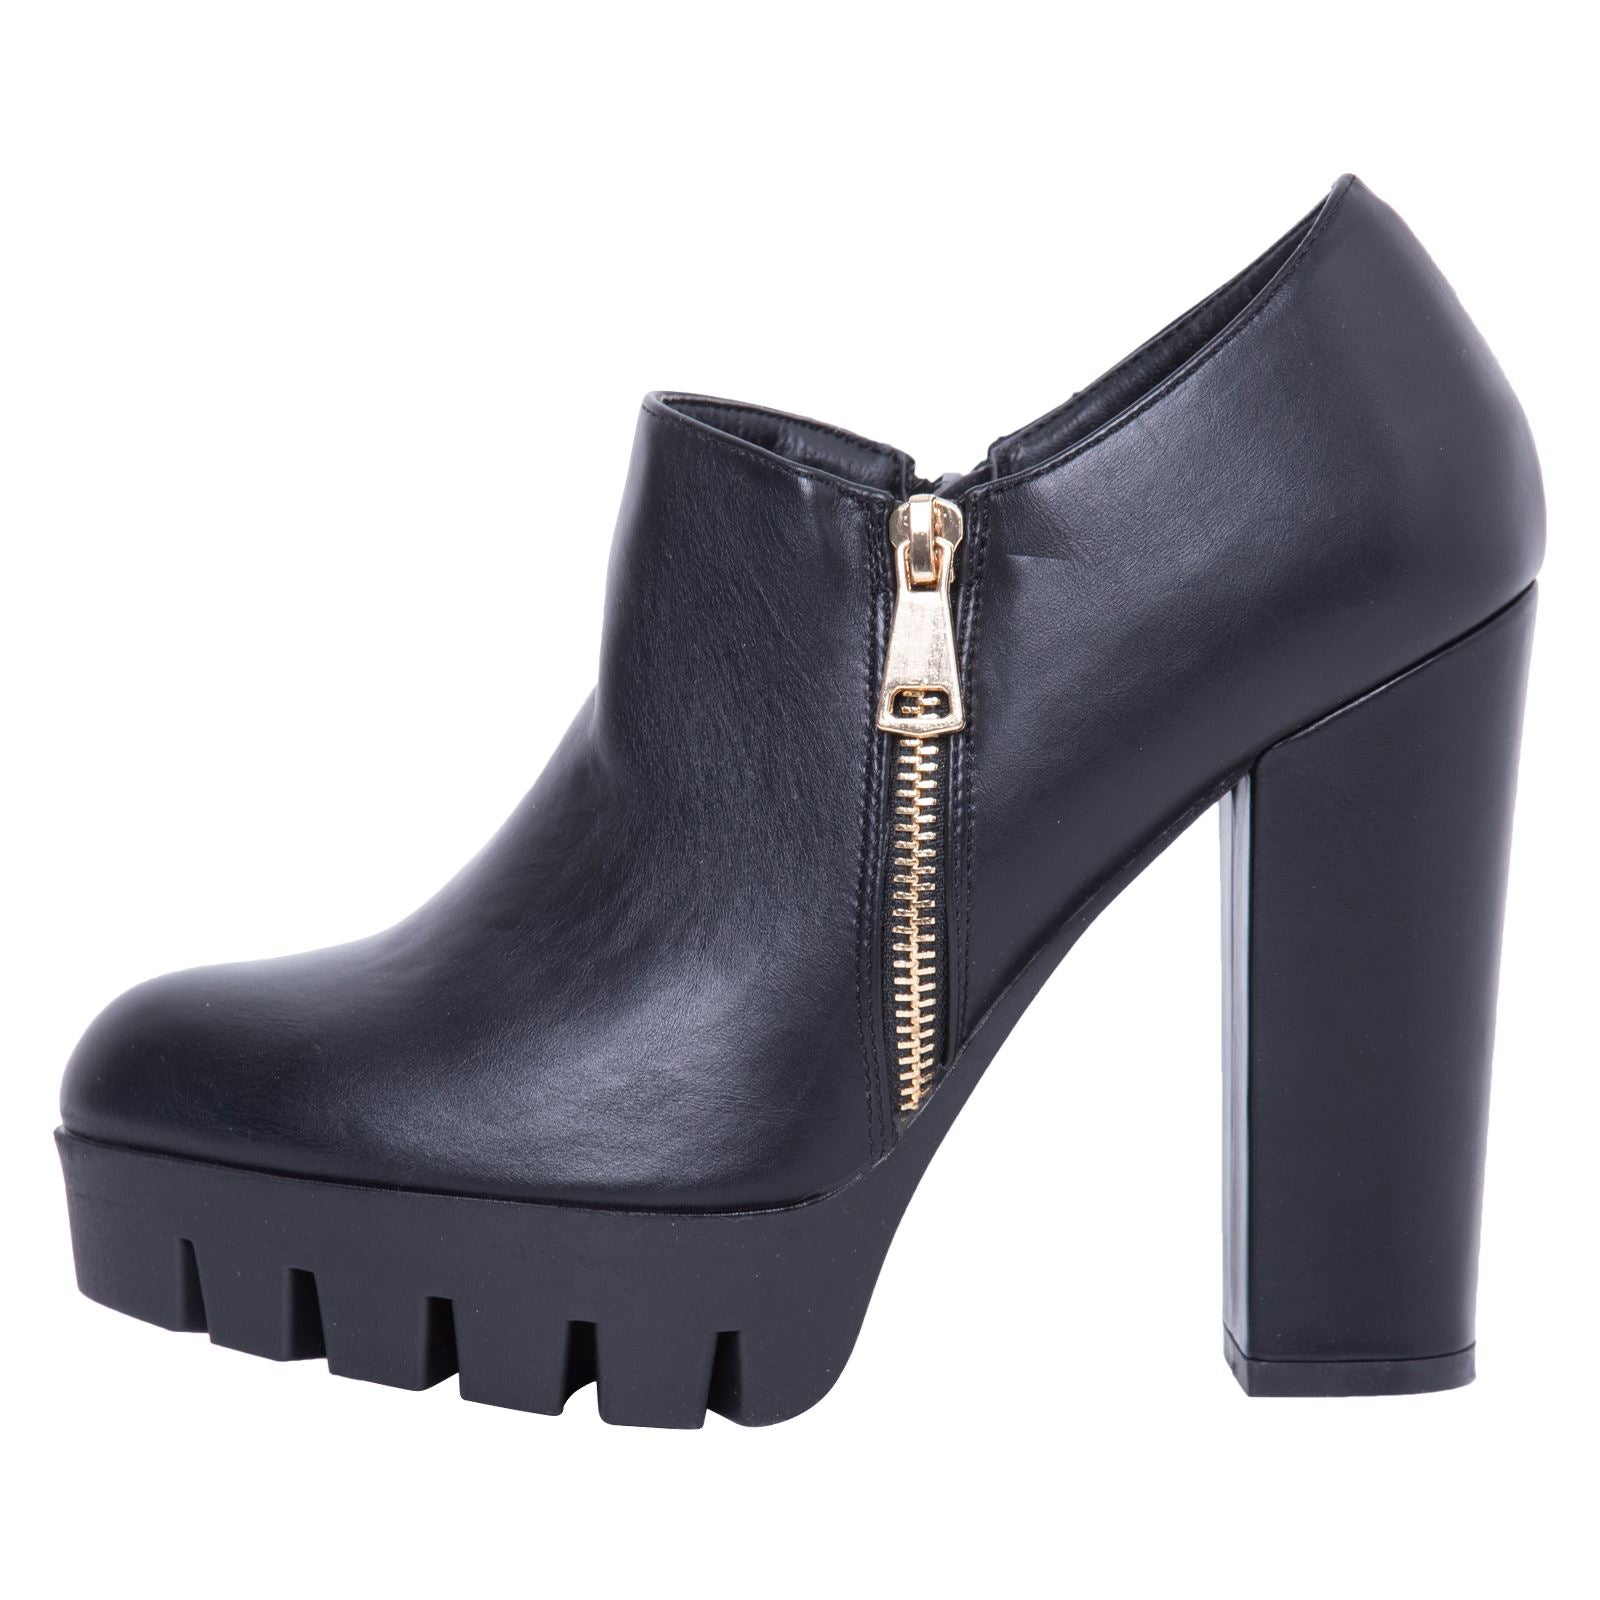 Ada Studded Heeled Shoes in Black Faux Leather - Feet First Fashion